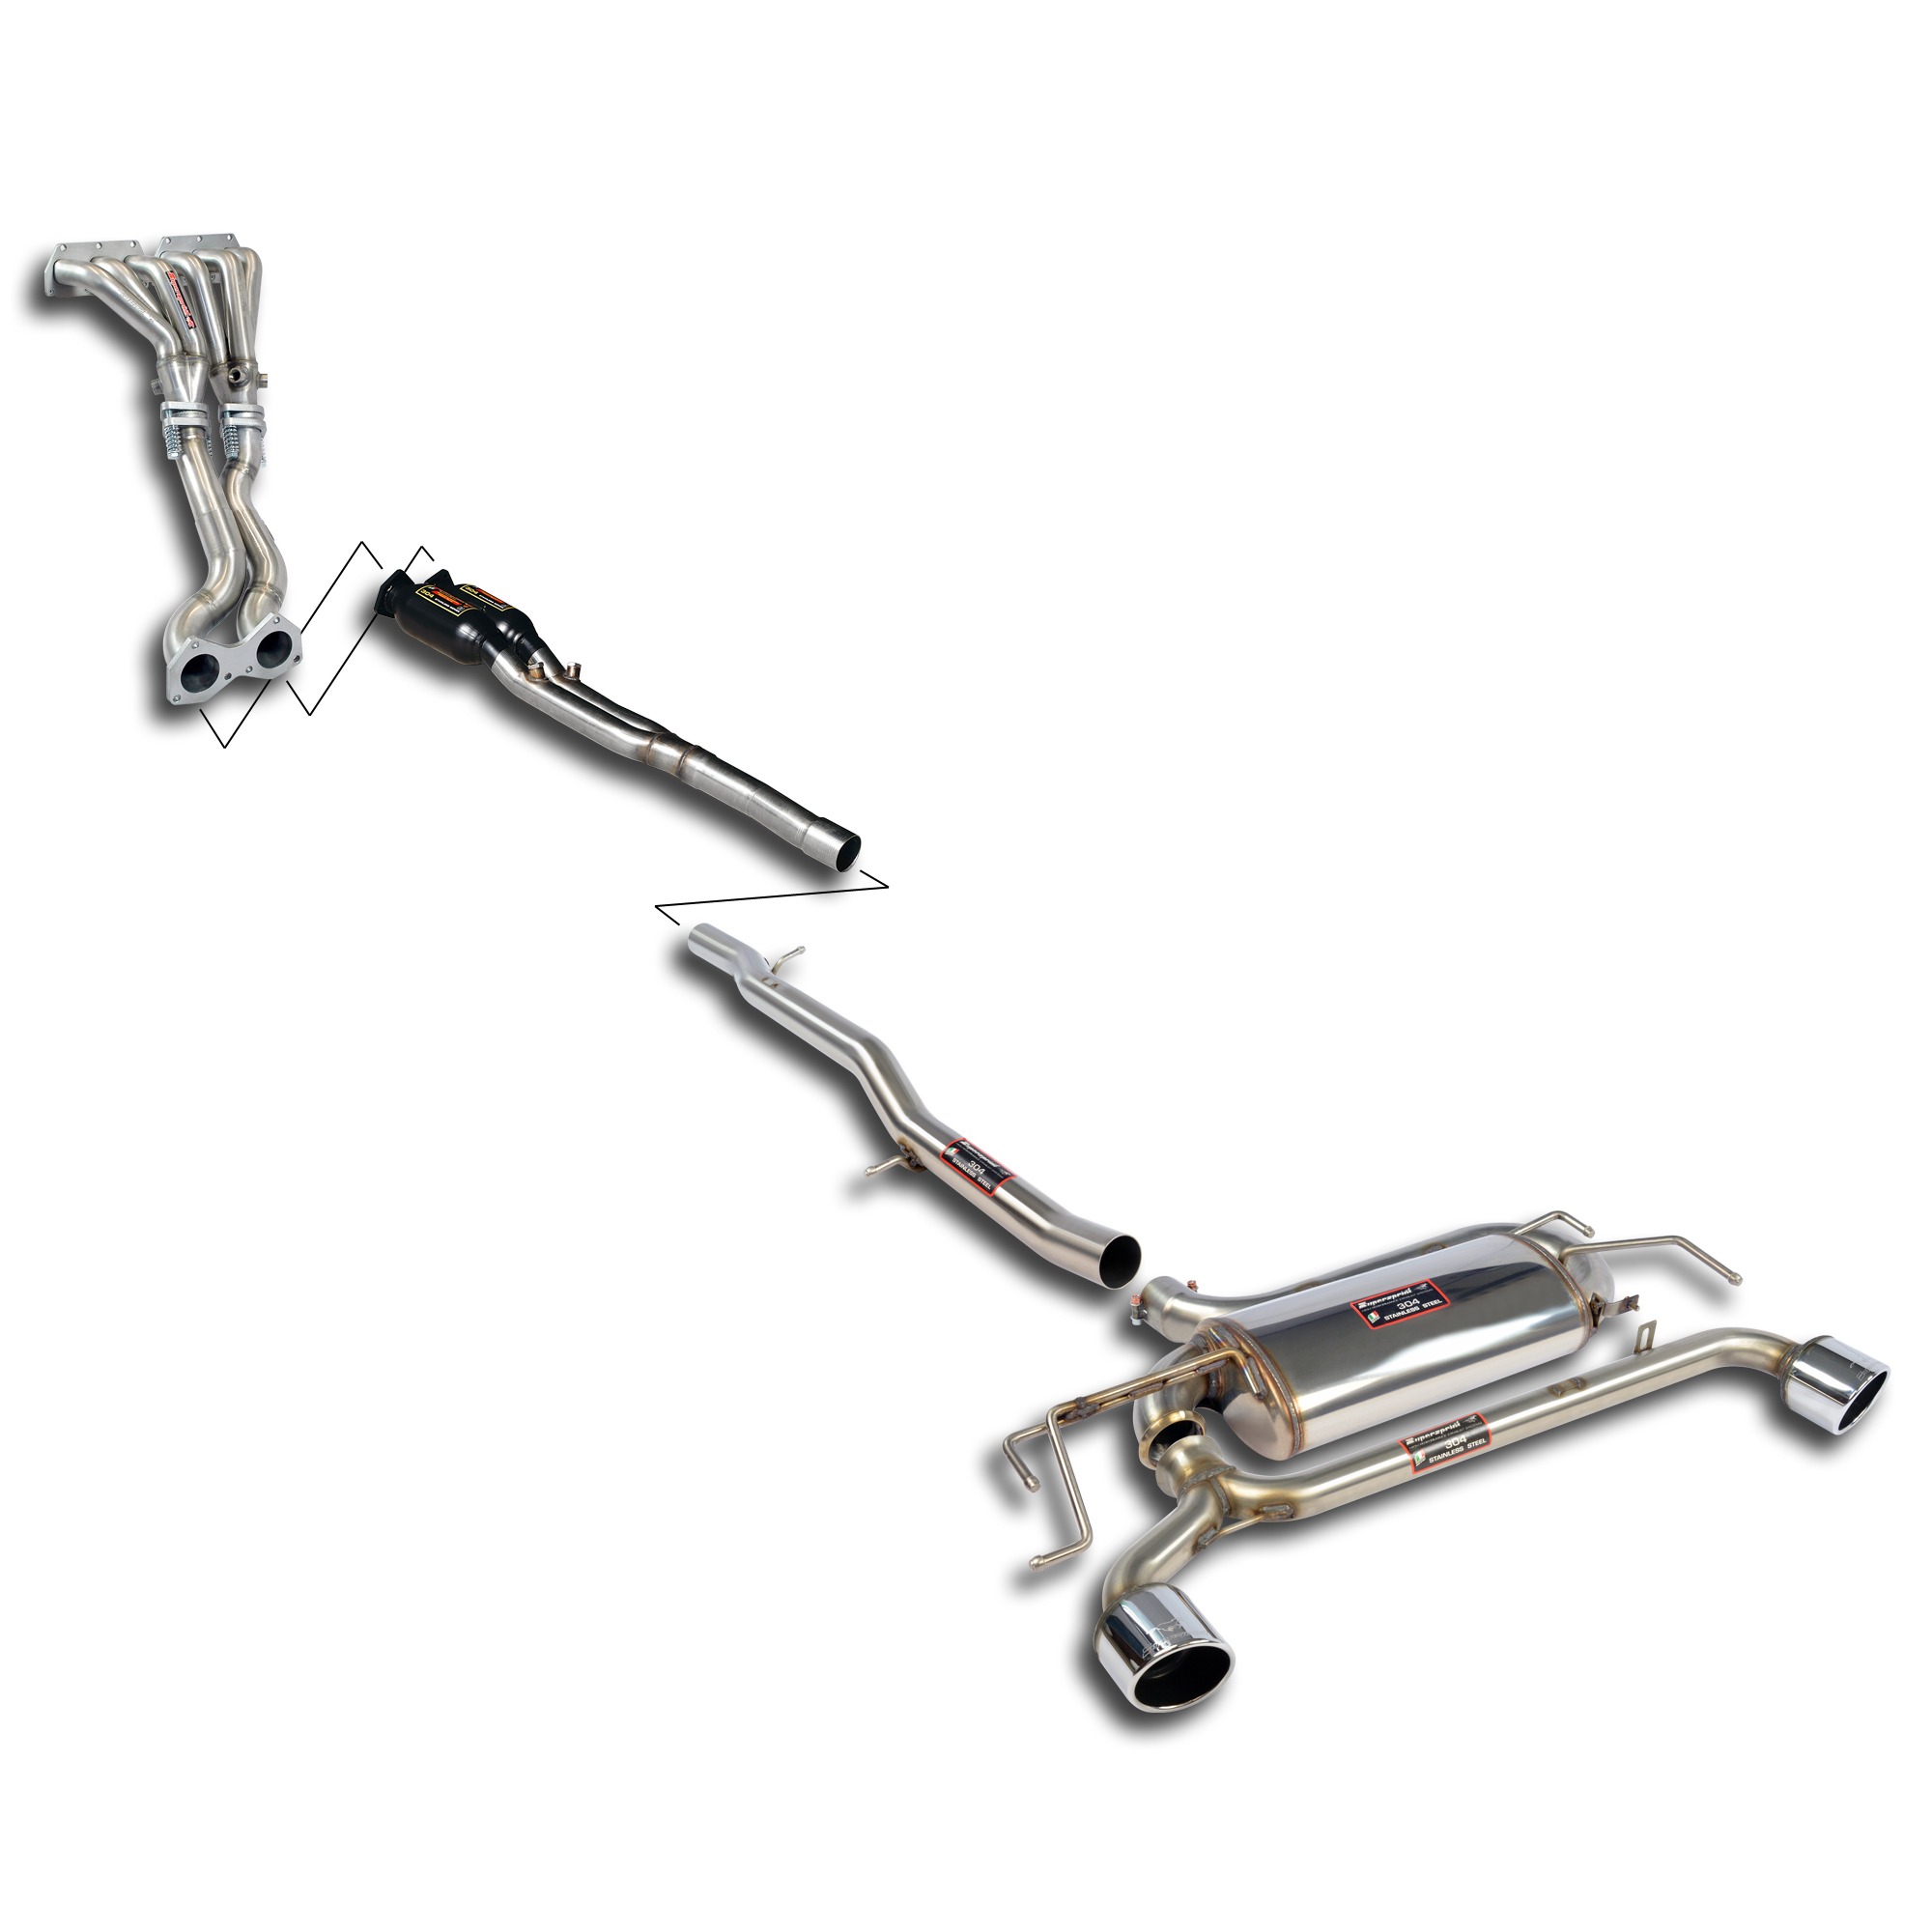 Volkswagen - VW GOLF IV R32 Track performance pack, performance exhaust systems